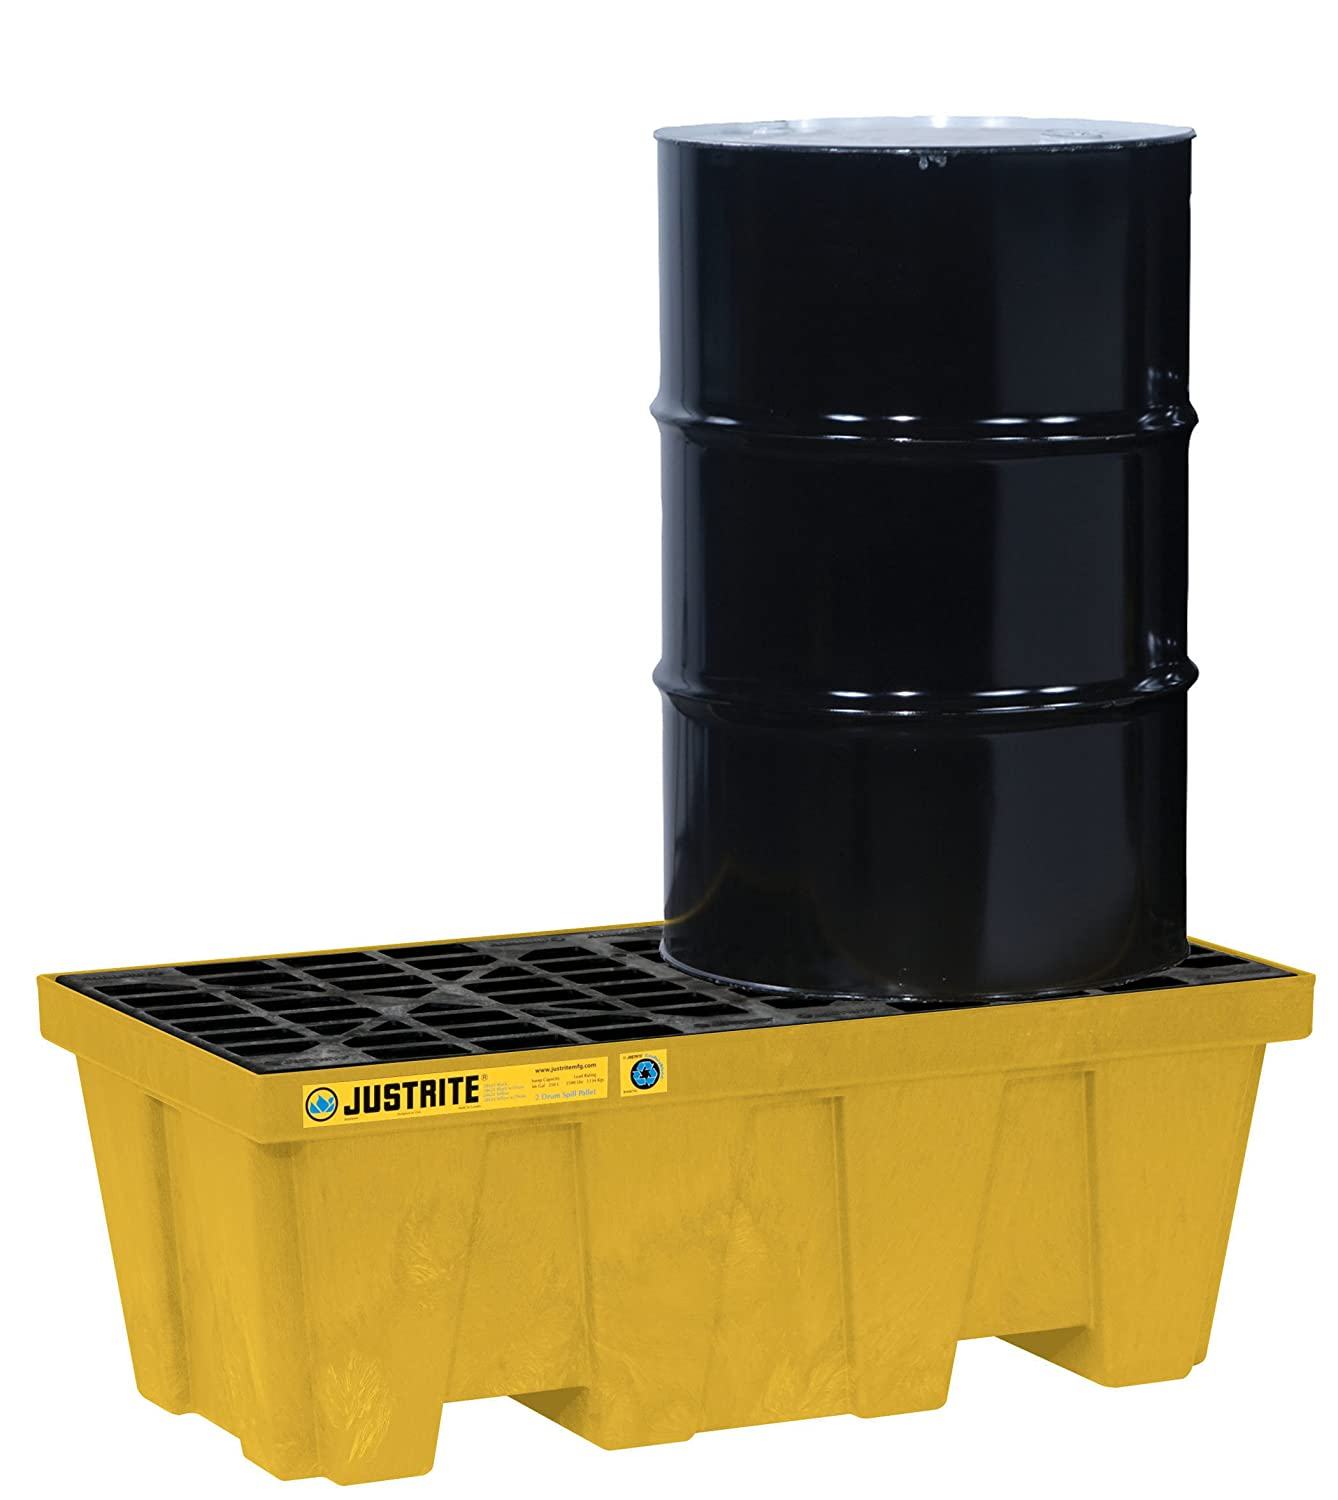 LXWXH 49x 25 x 18 Yellow 2 Drum Pallet Justrite 28624 EcoPolyBlend 66 Gallon Sump Capacity